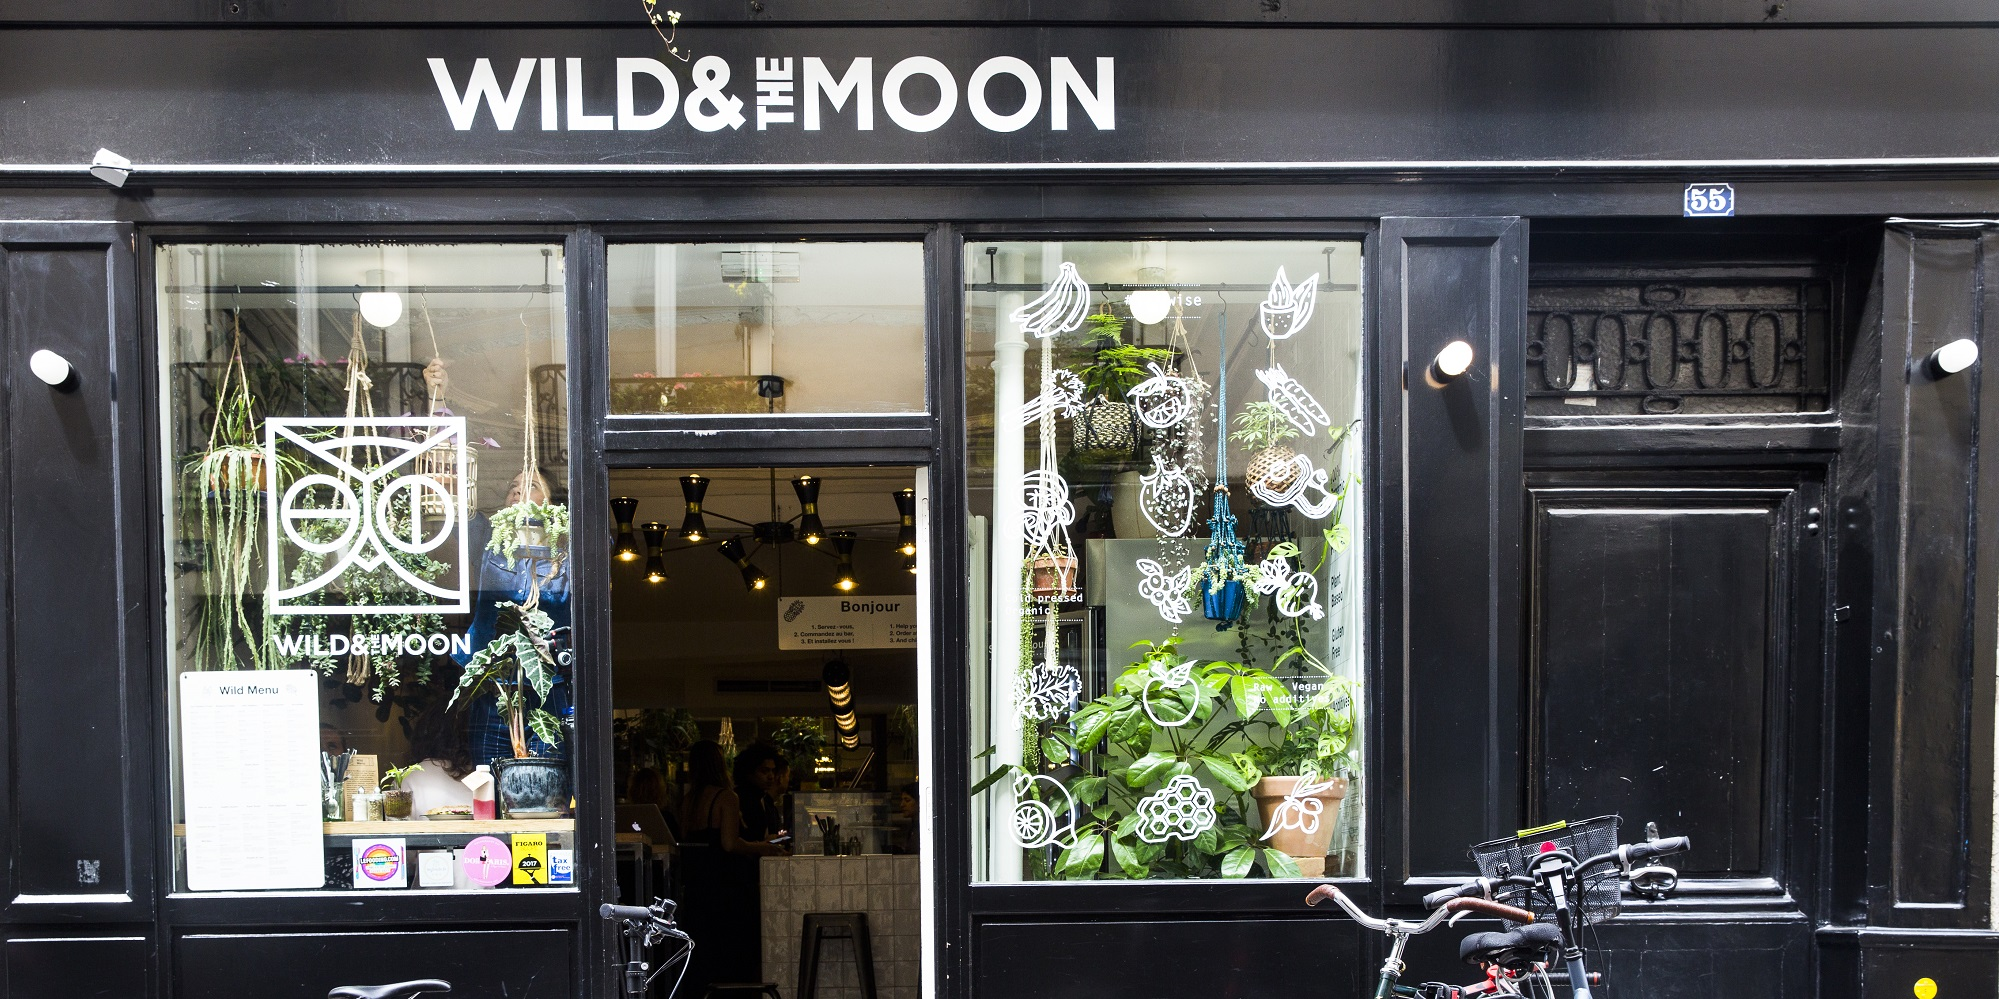 Brunch Wild & The Moon Charlot (75003 Paris)